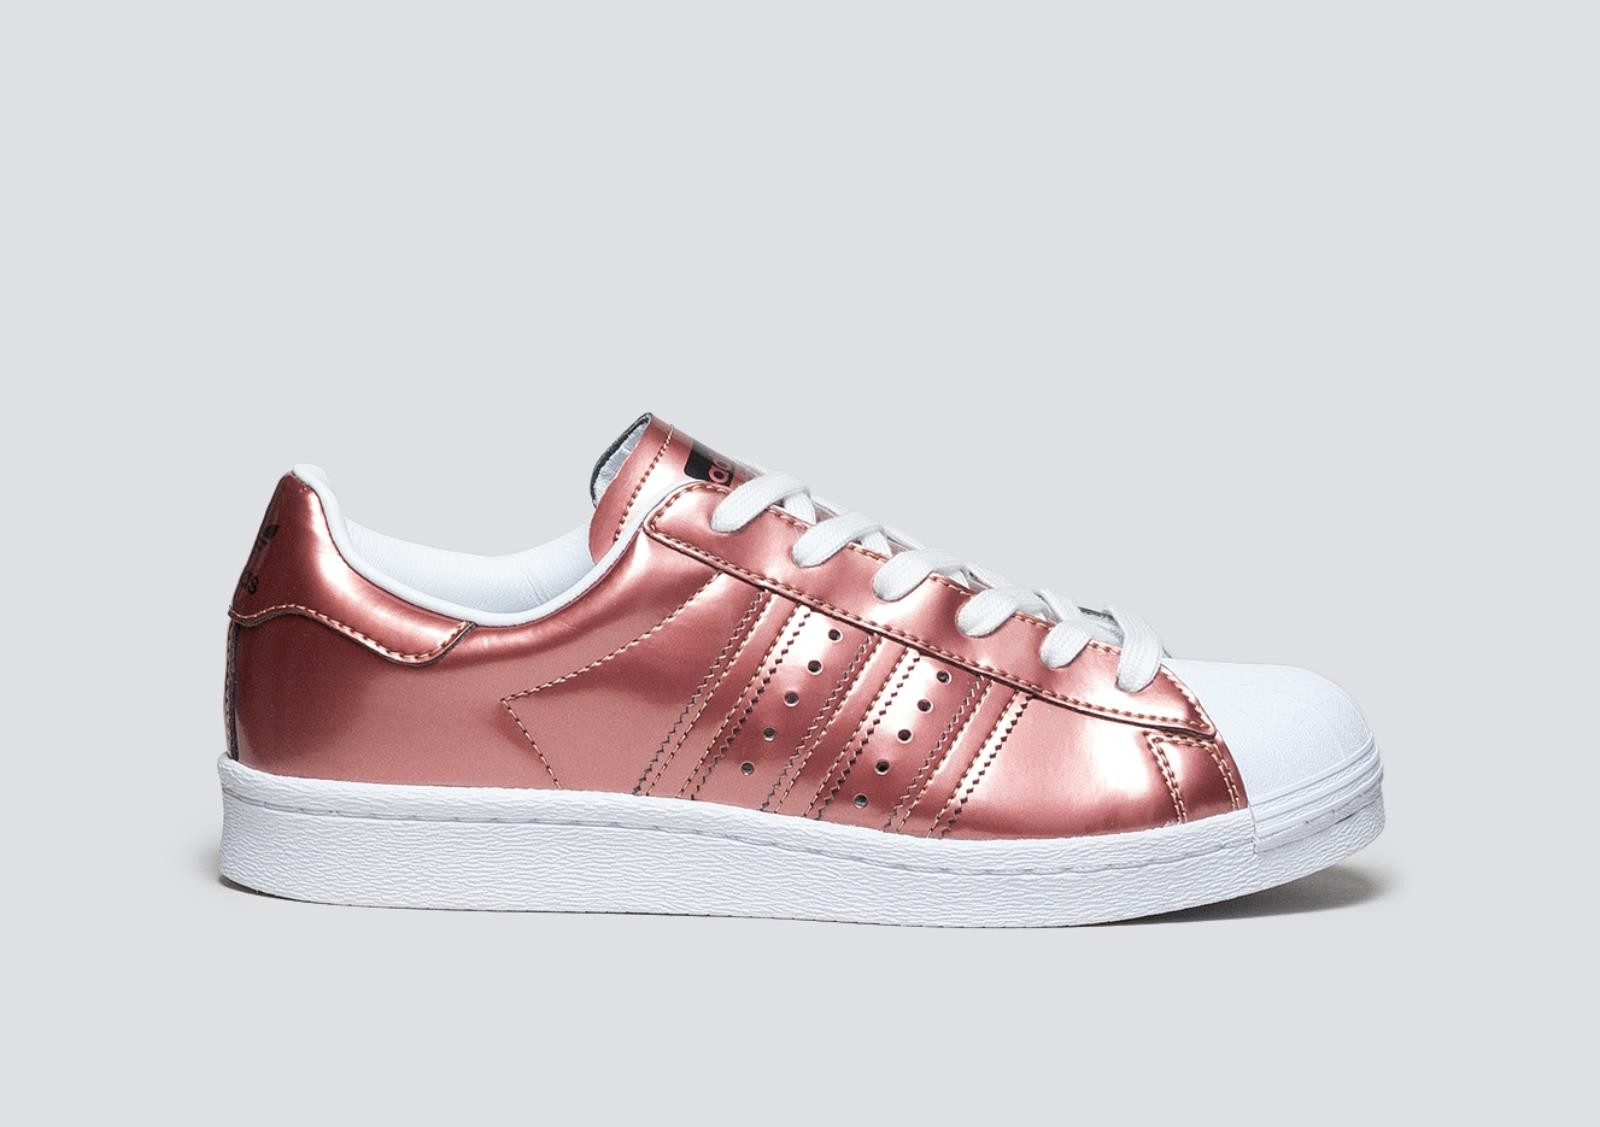 check out 1fe62 4fa9a Scarpe donna ADIDAS SUPERSTAR BOOST in pelle lucida rosa antico ...